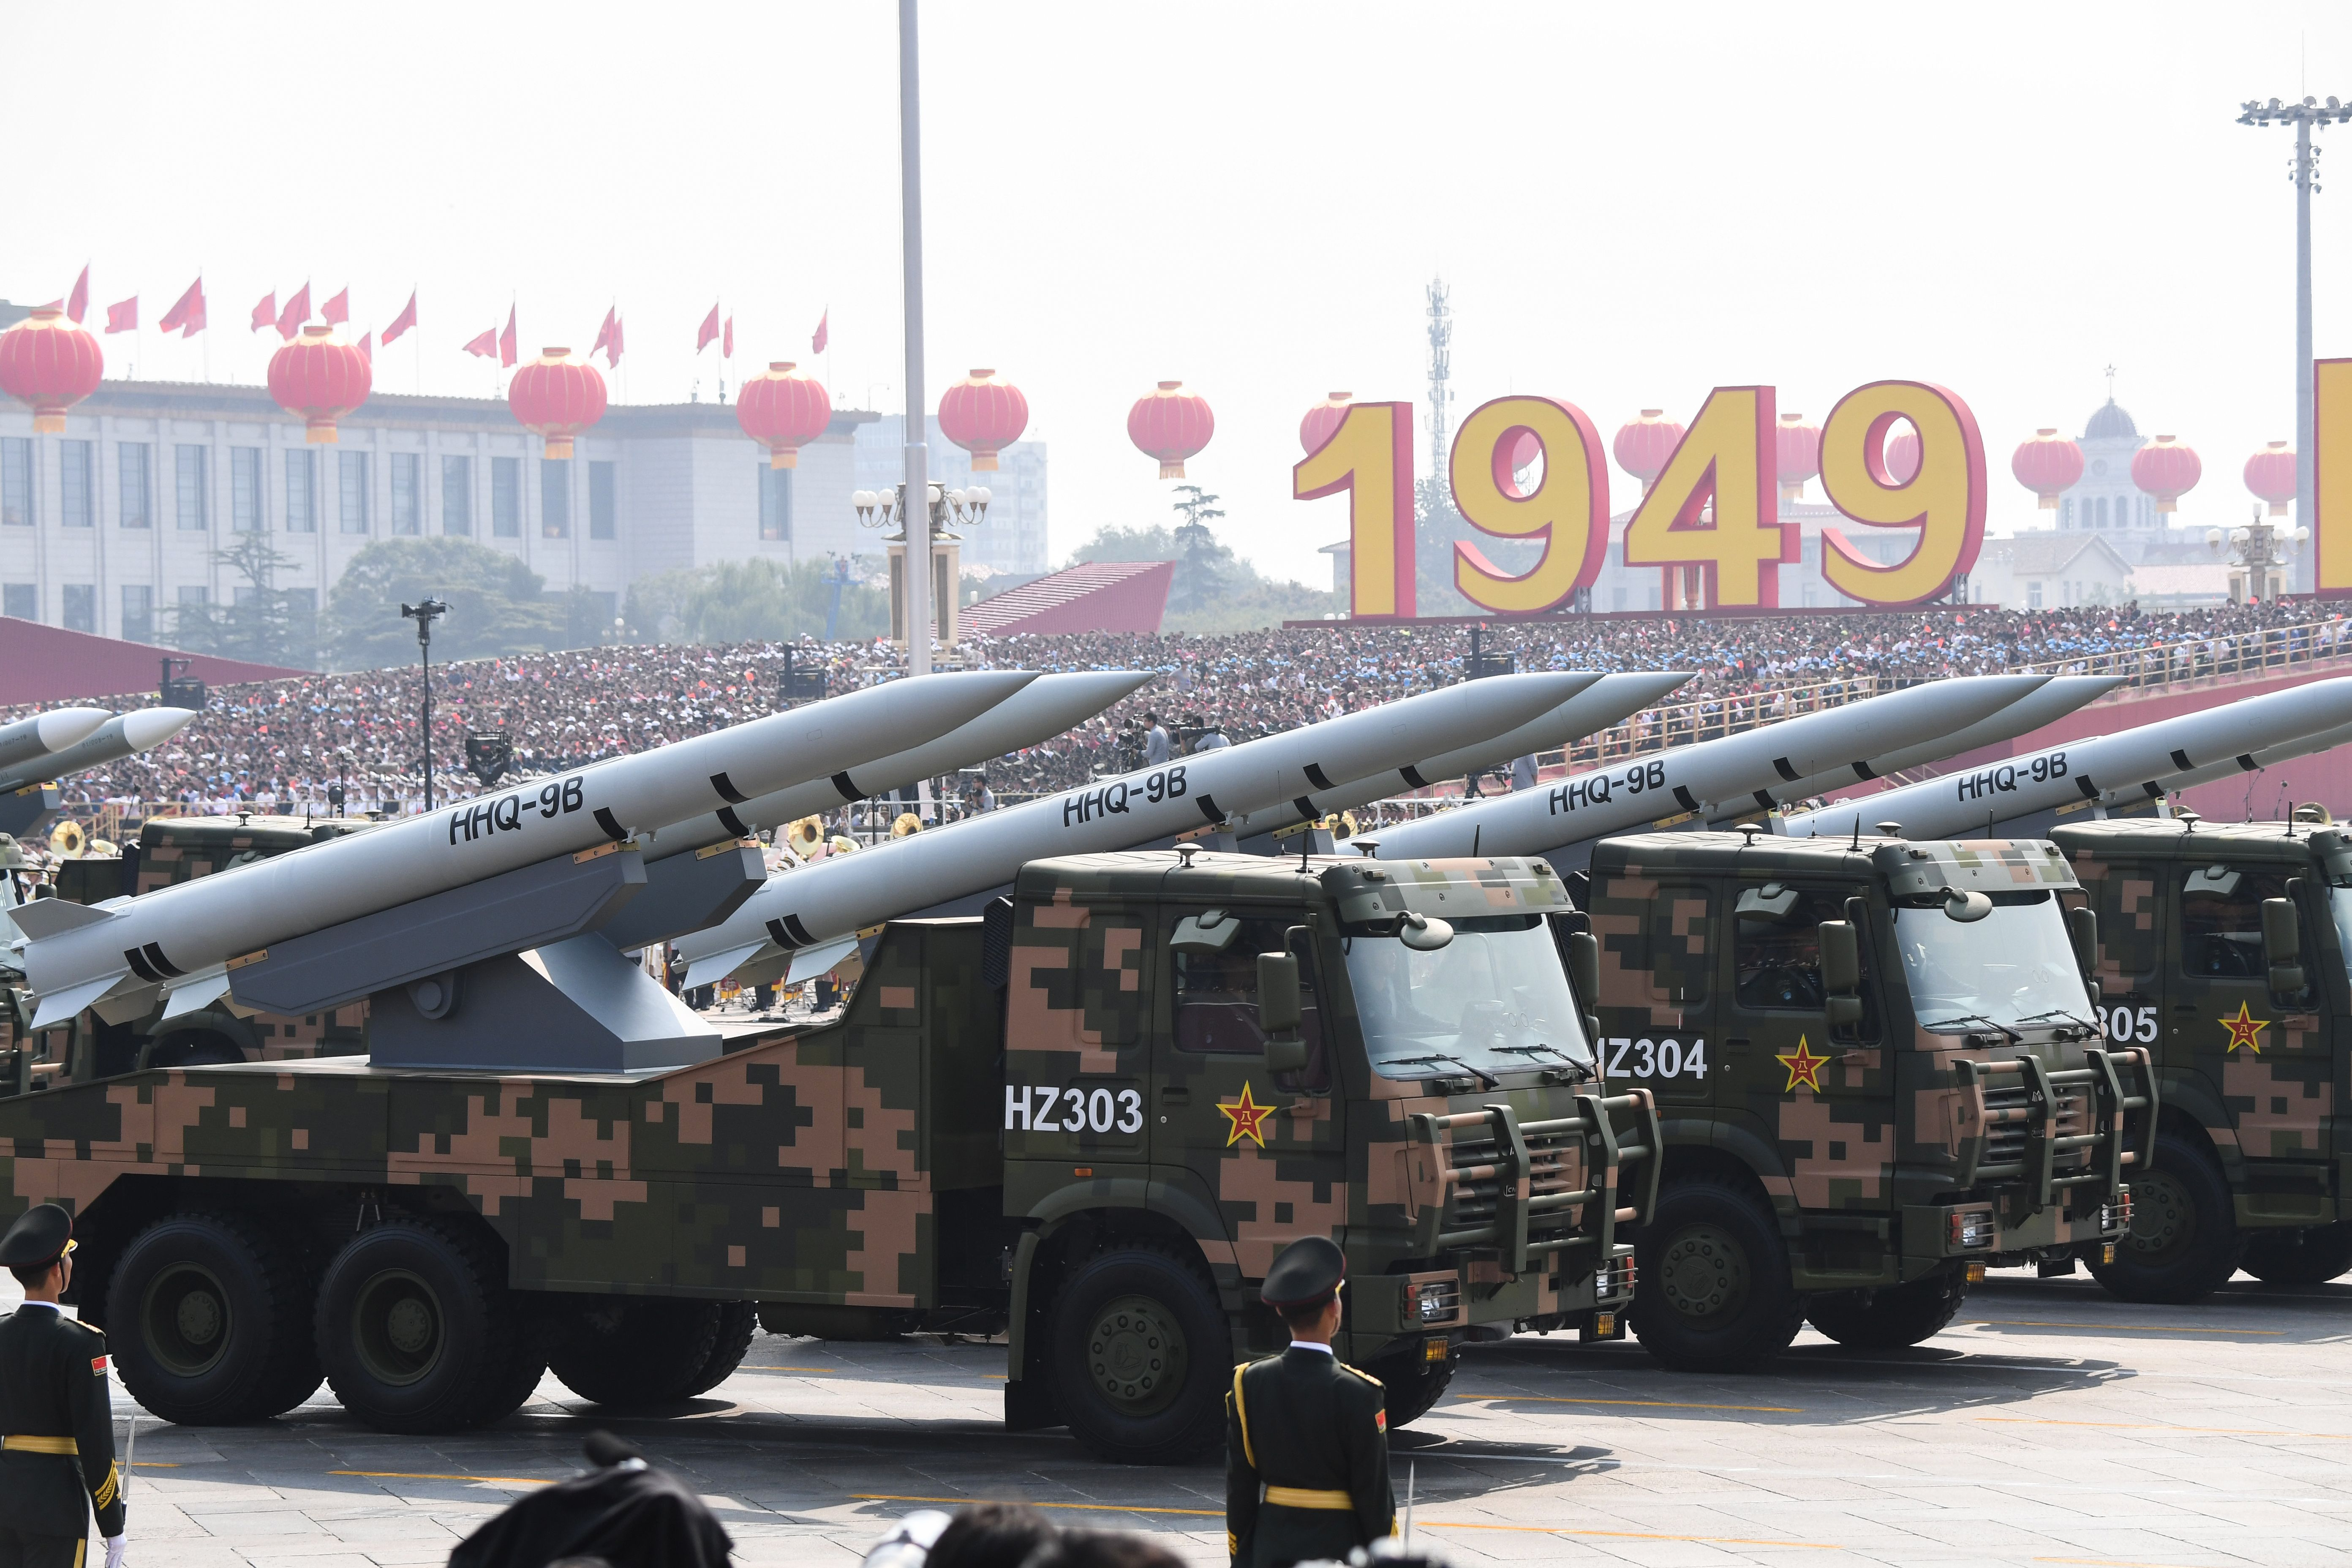 Military vehicles carry HHQ-9B surface-to-air missiles through Tiananmen Square. (Greg Baker/AFP via Getty Images)